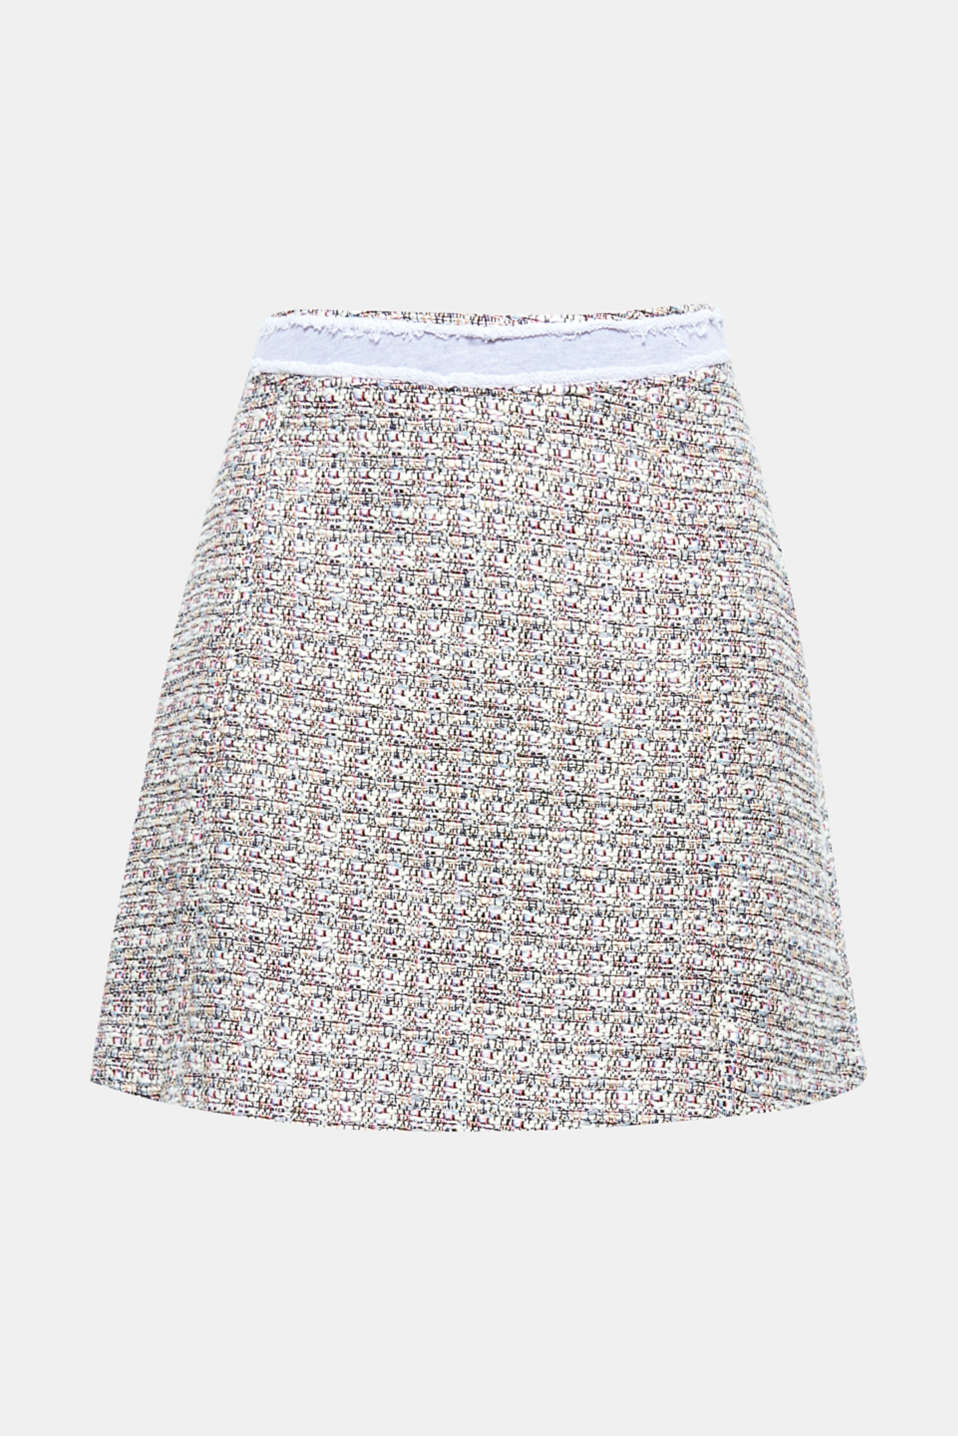 The sweatshirt waistband with open edges and interwoven, shimmering thread give this bouclé skirt a super-stylish finish!